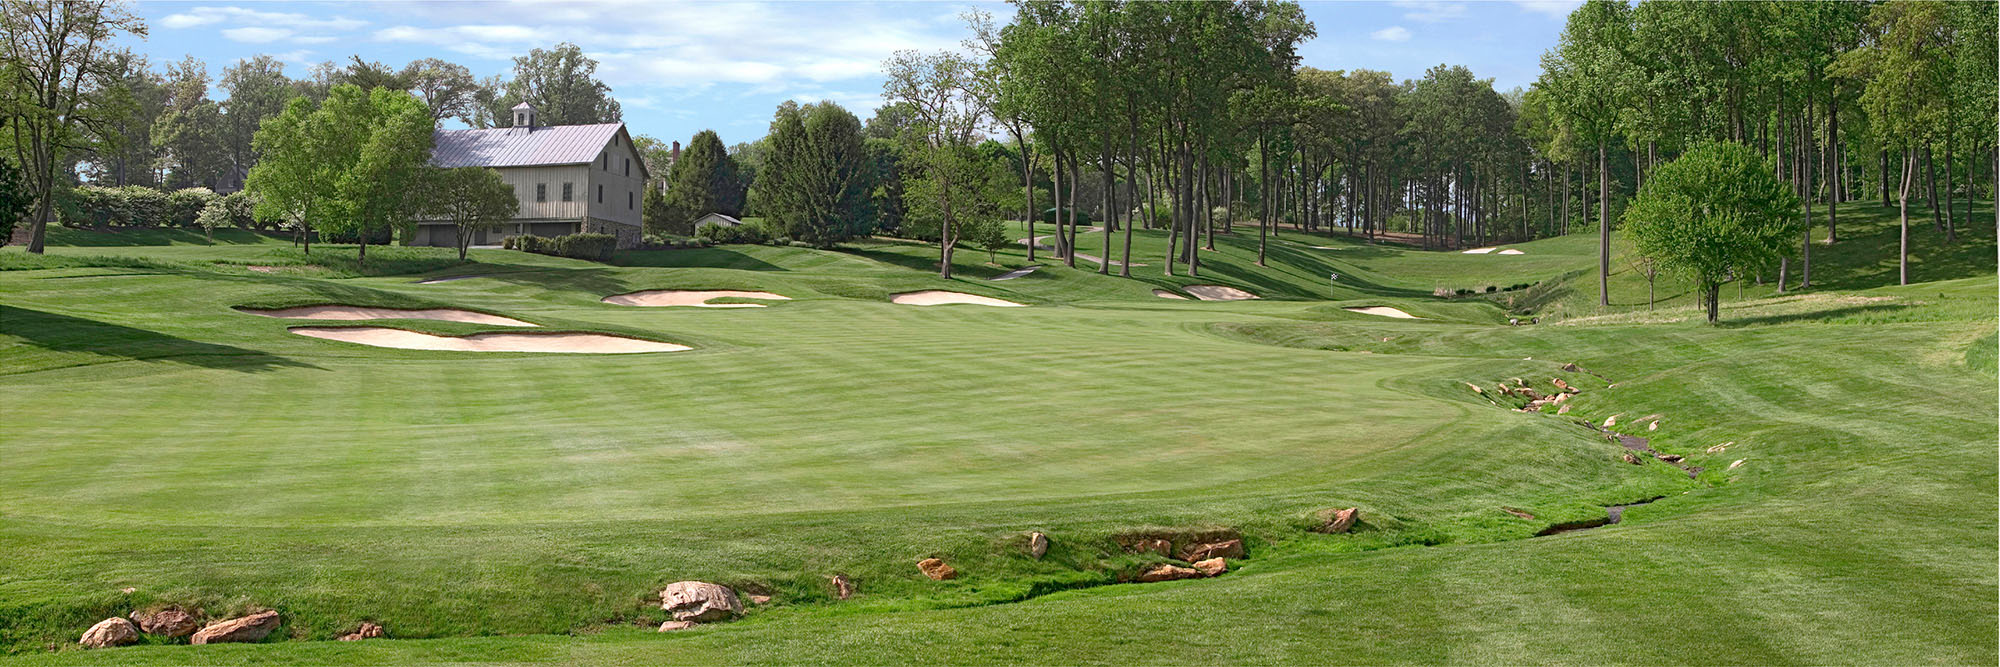 Golf Course Image - Caves Valley Golf Club No. 9